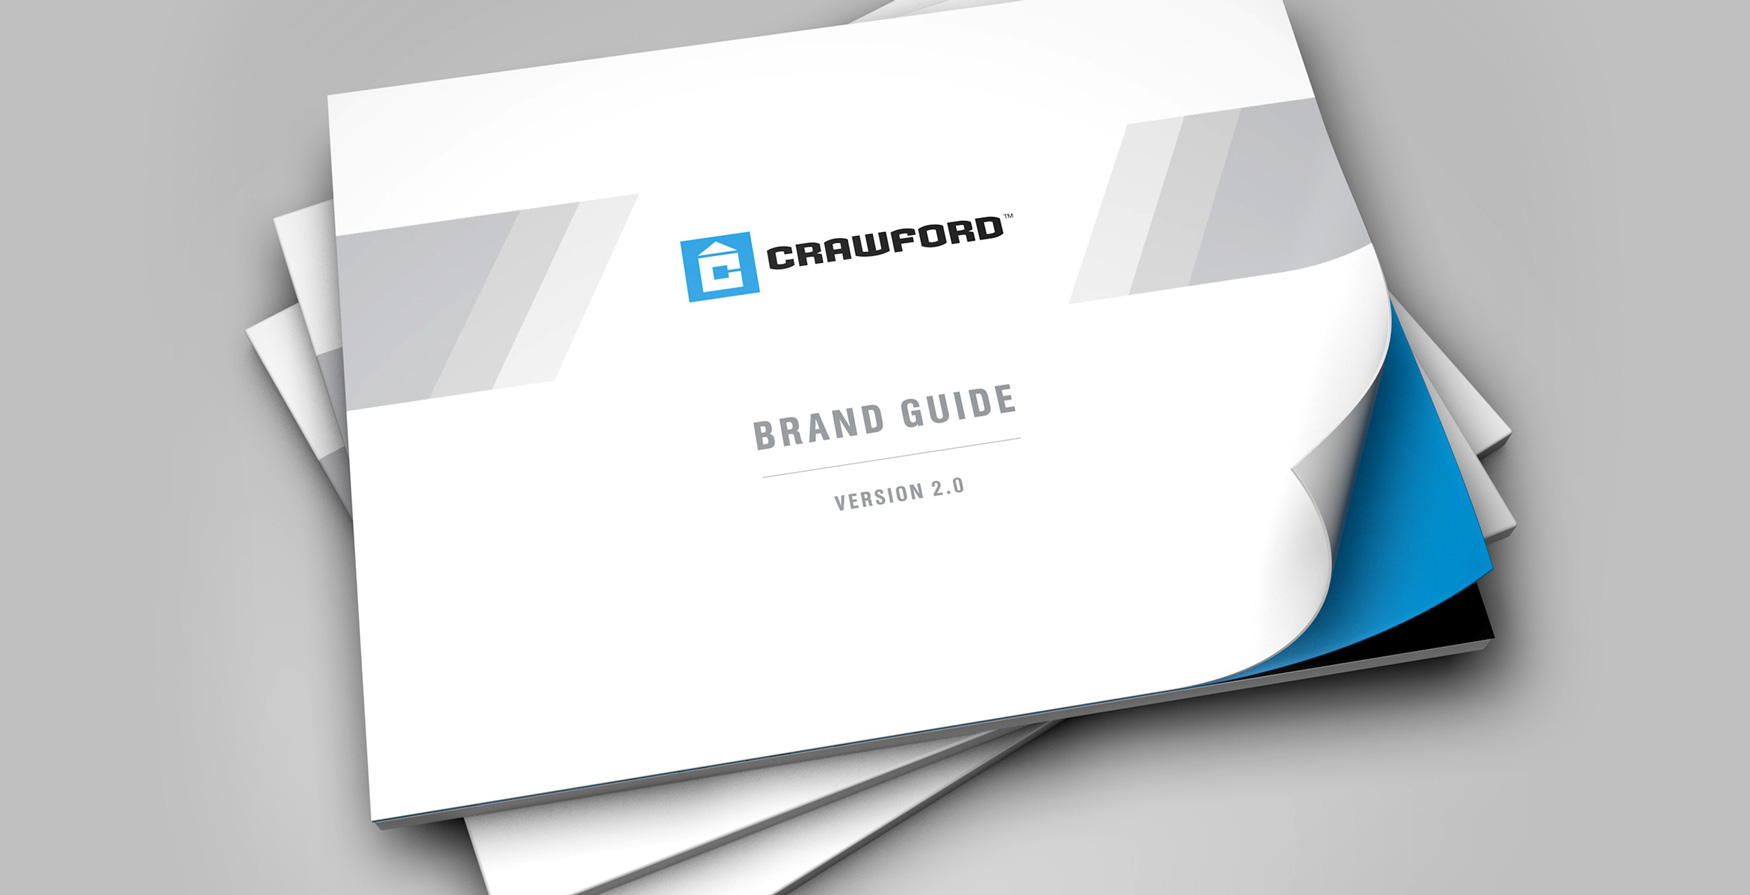 crawford-brand-guide-book-design-page-layout-branding-clean-hardware-industrial-graphic-design-guidelines